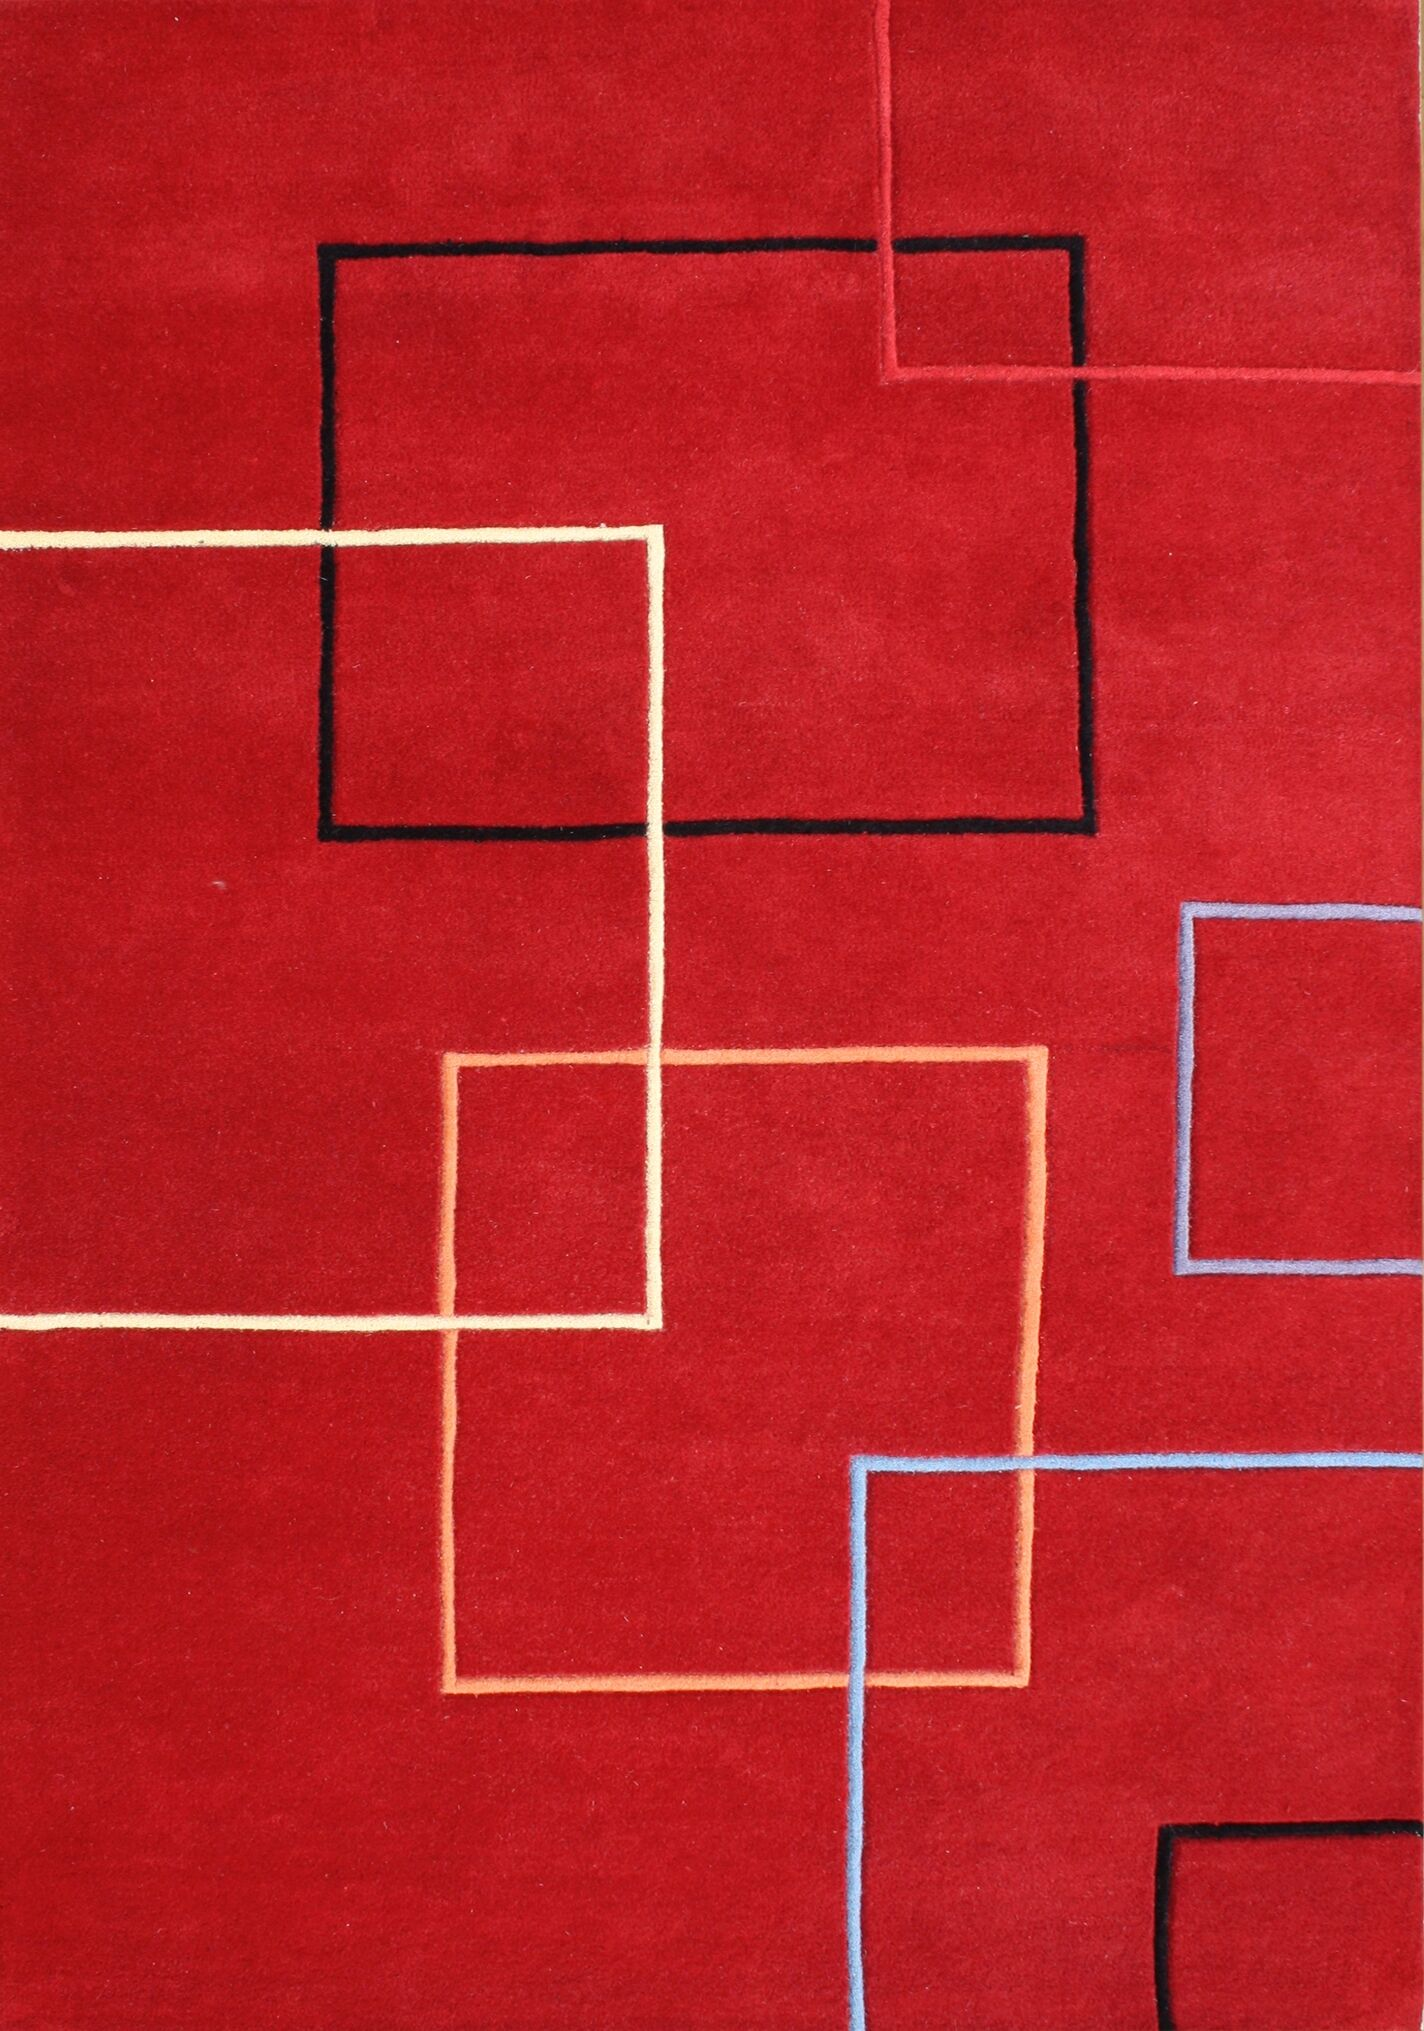 Verrazzano Hand-Tufted Red Area Rug Rug Size: 9' x 12'